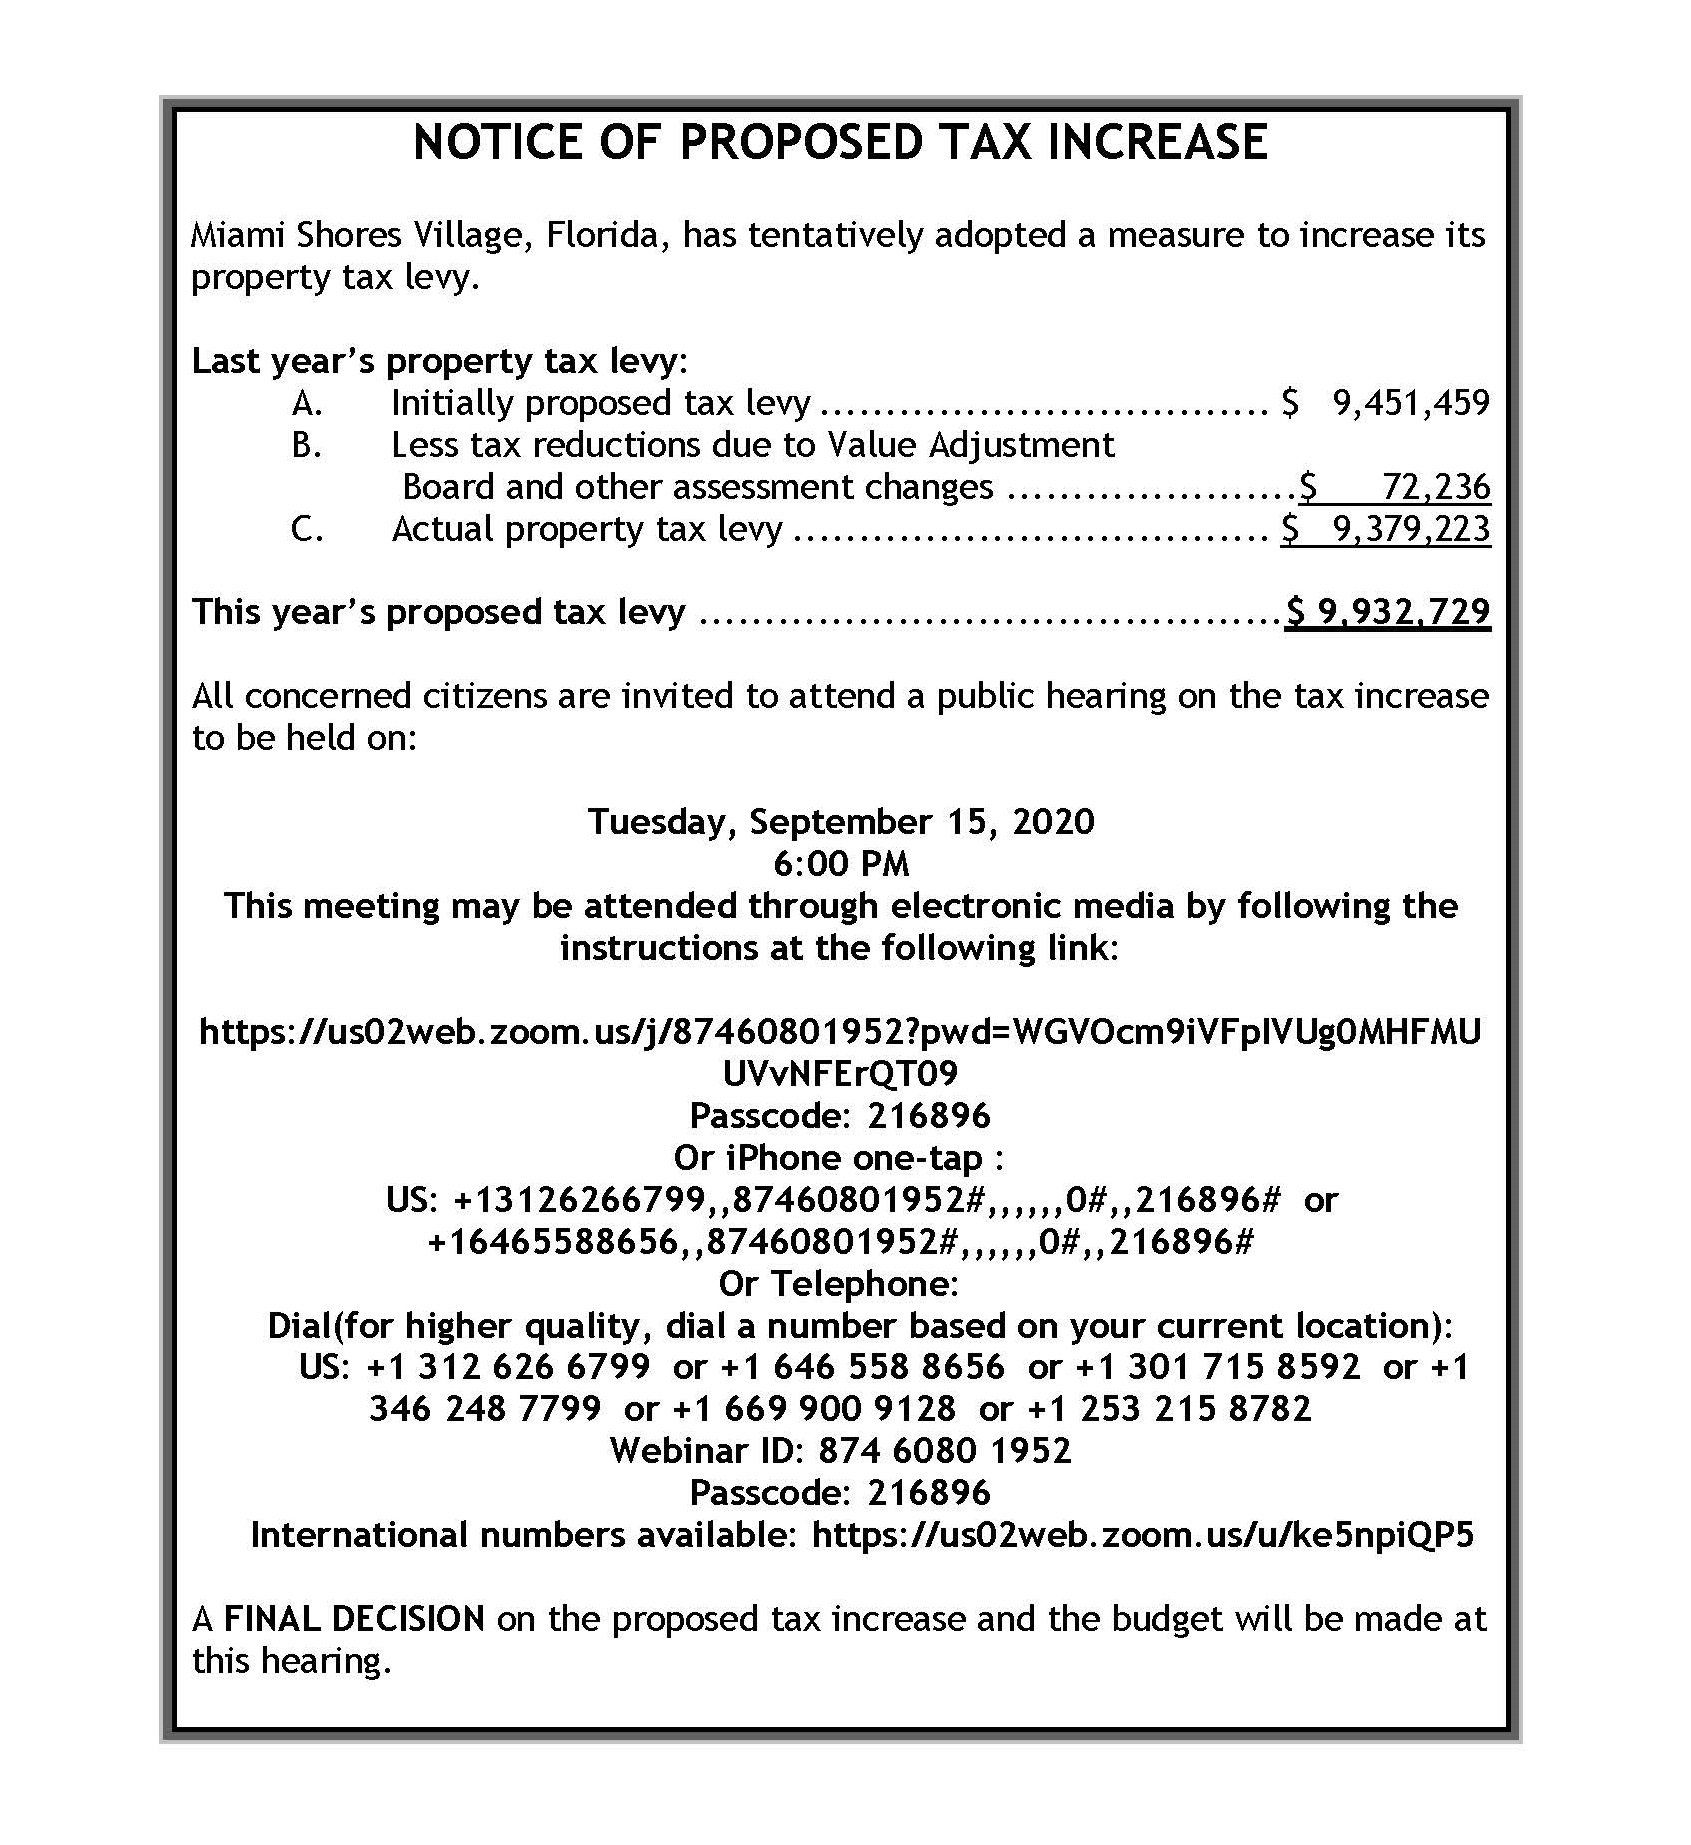 Notice of Proposed Tax Increase_2021 Budget_.jpg (634 KB)